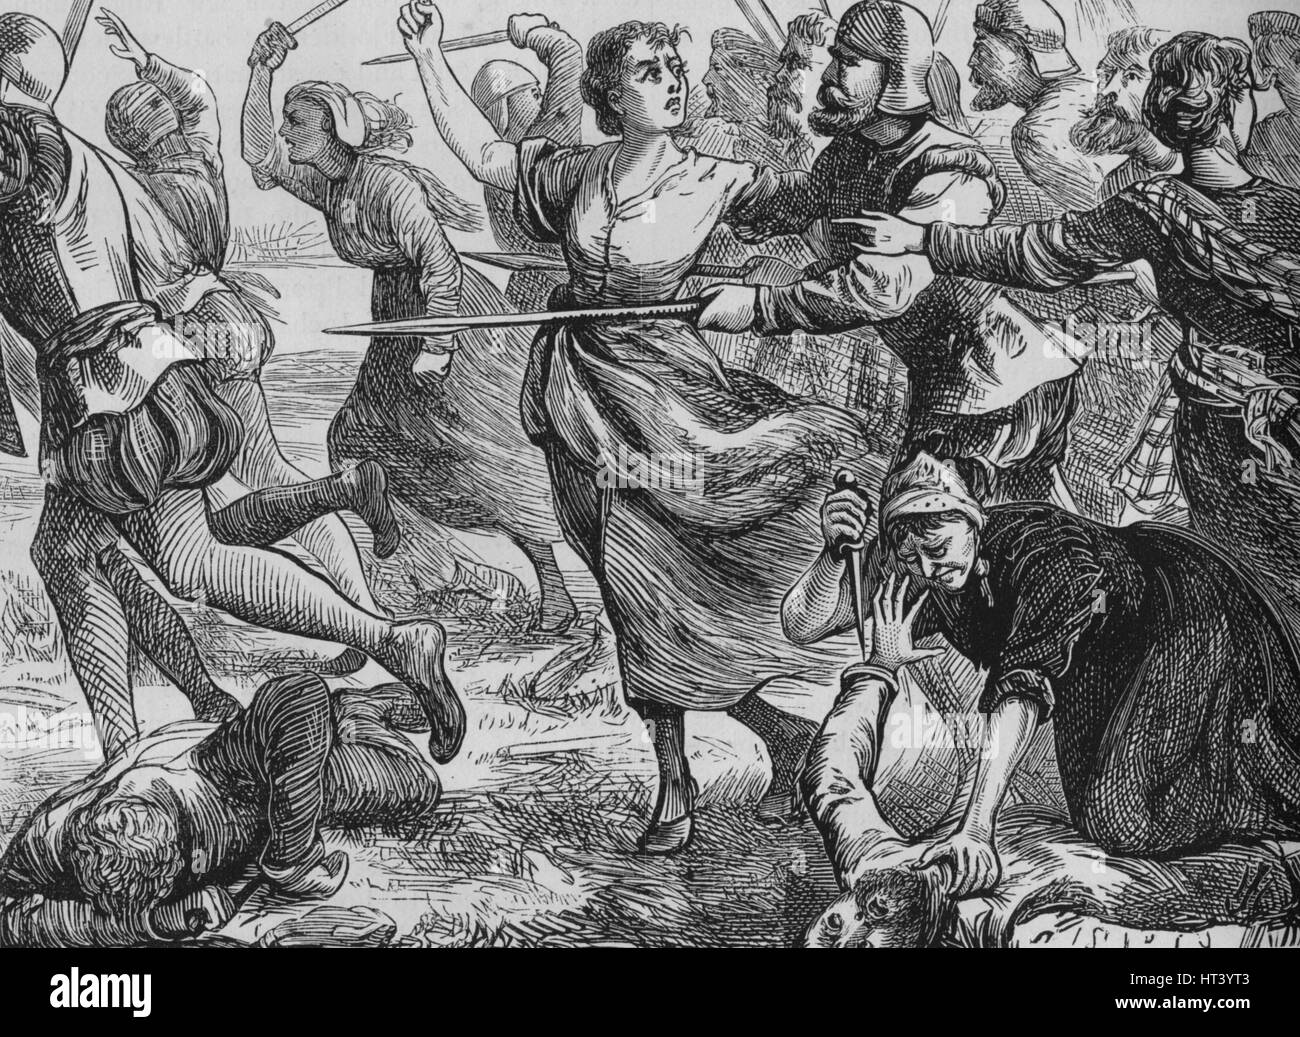 'The Battle of Ancrum Moor', 27 February 1545, (c1880). Artist: Unknown. - Stock Image